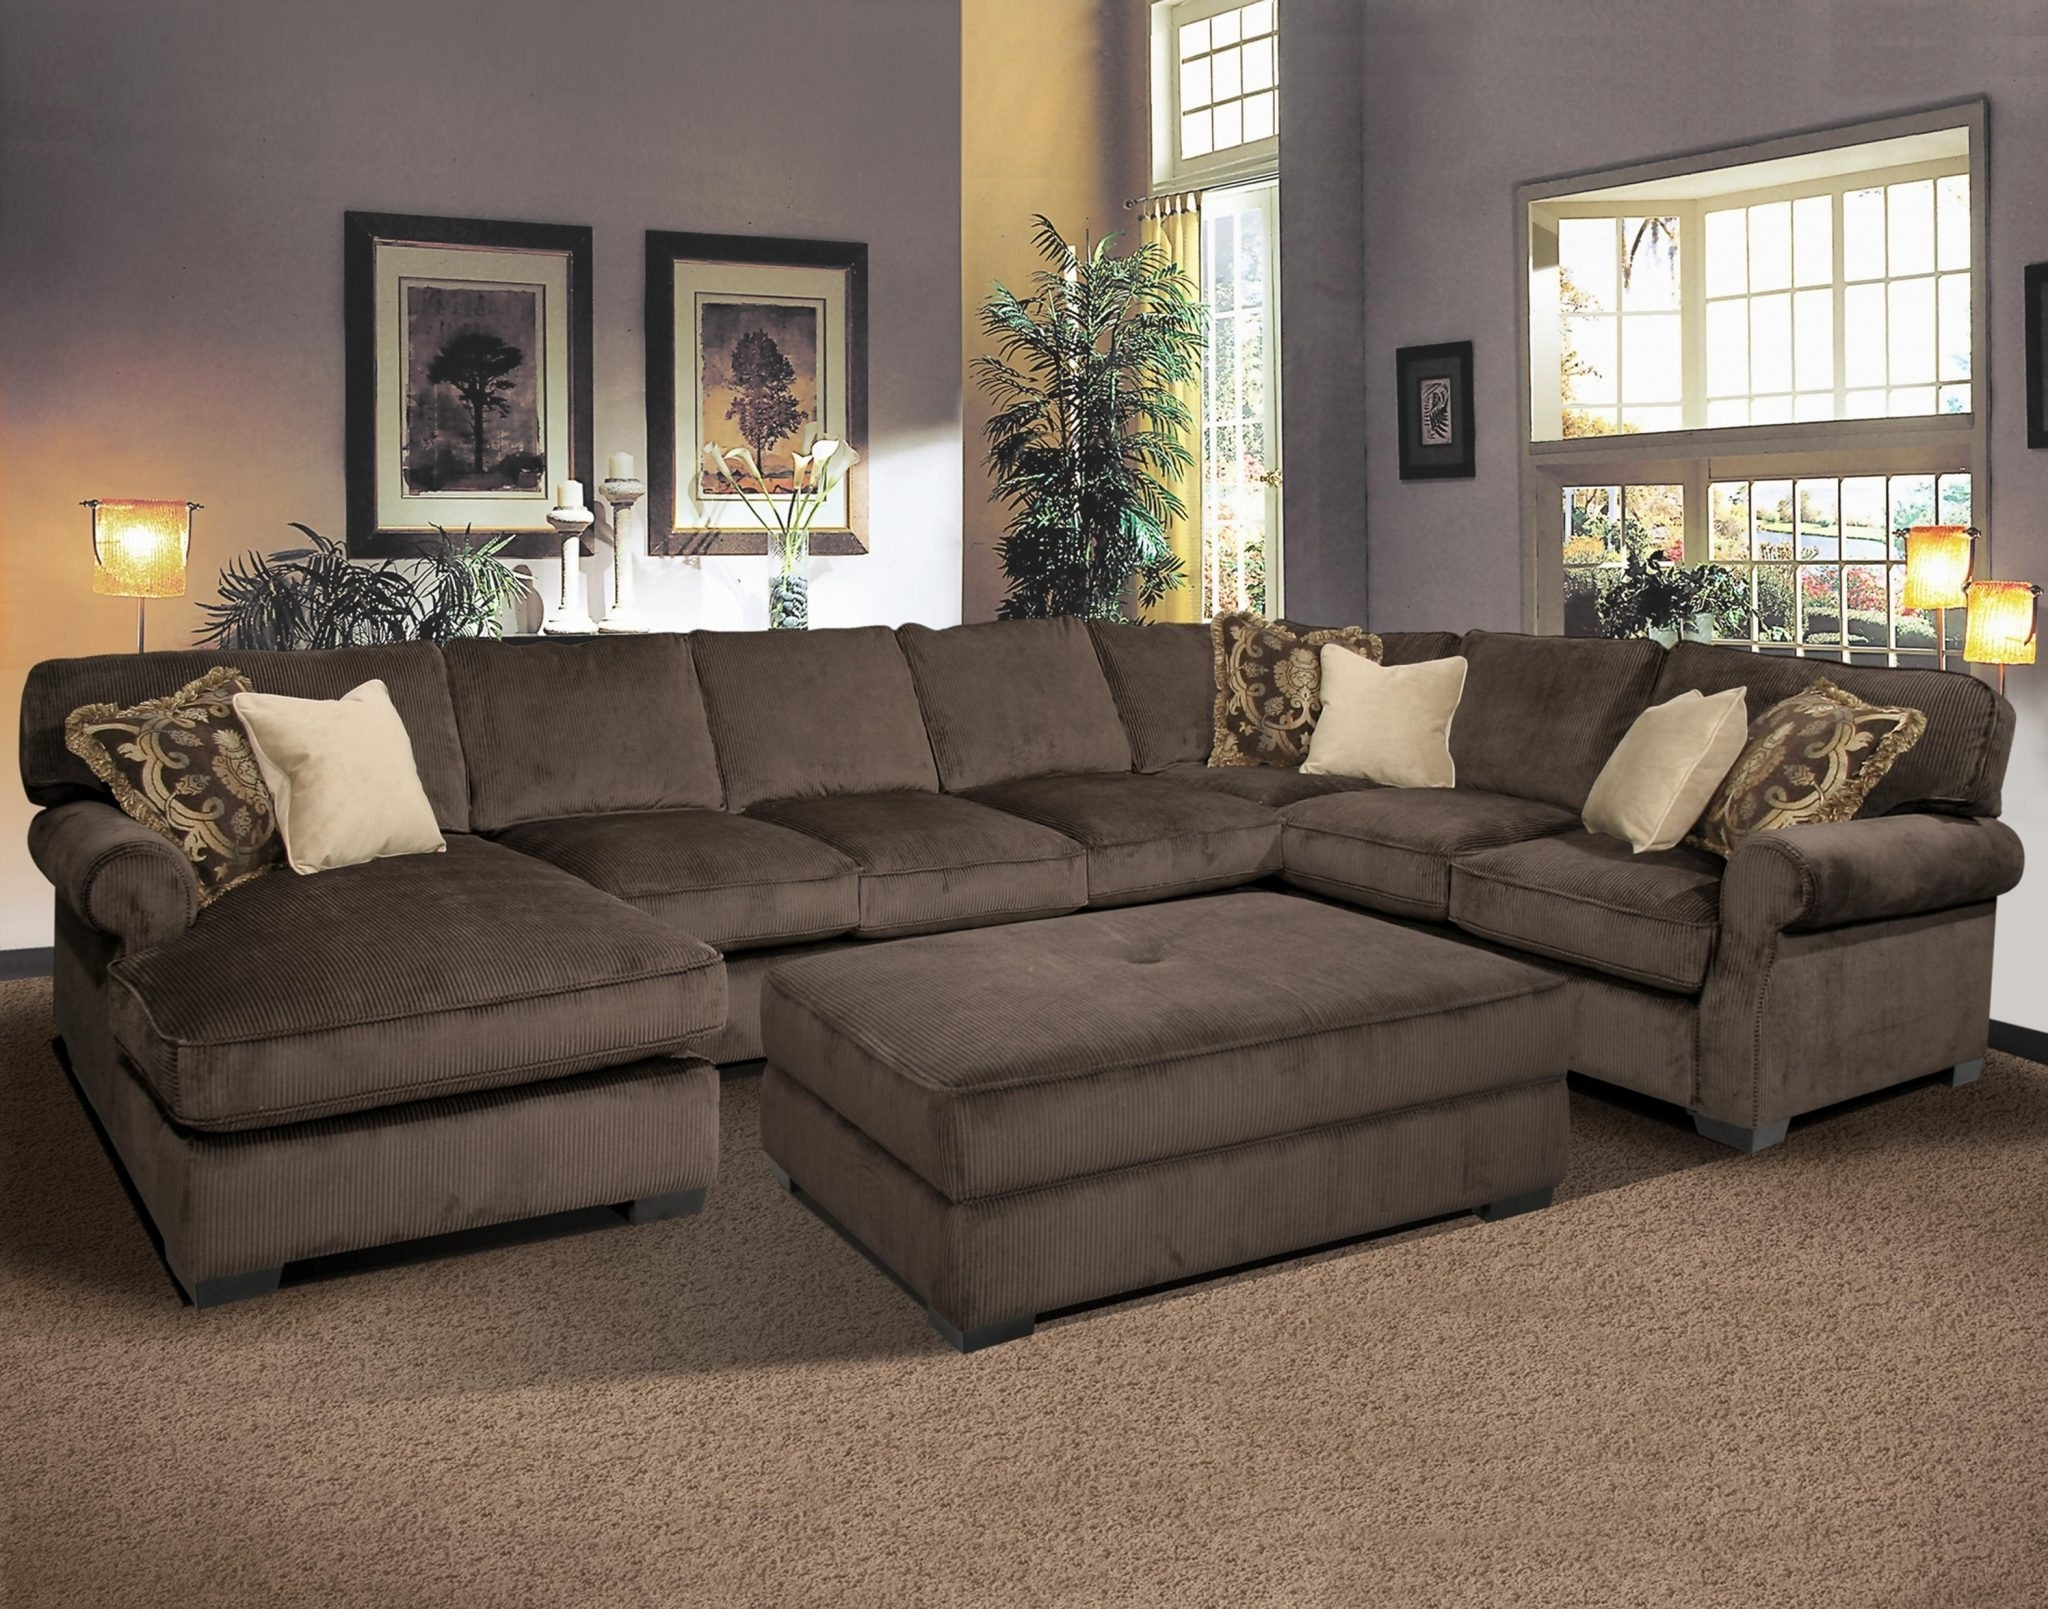 Best And Newest Large Sectionals With Chaise With Regard To Chesterfield Chair : Small Sleeper Sofa With Chaise Discount (View 5 of 15)